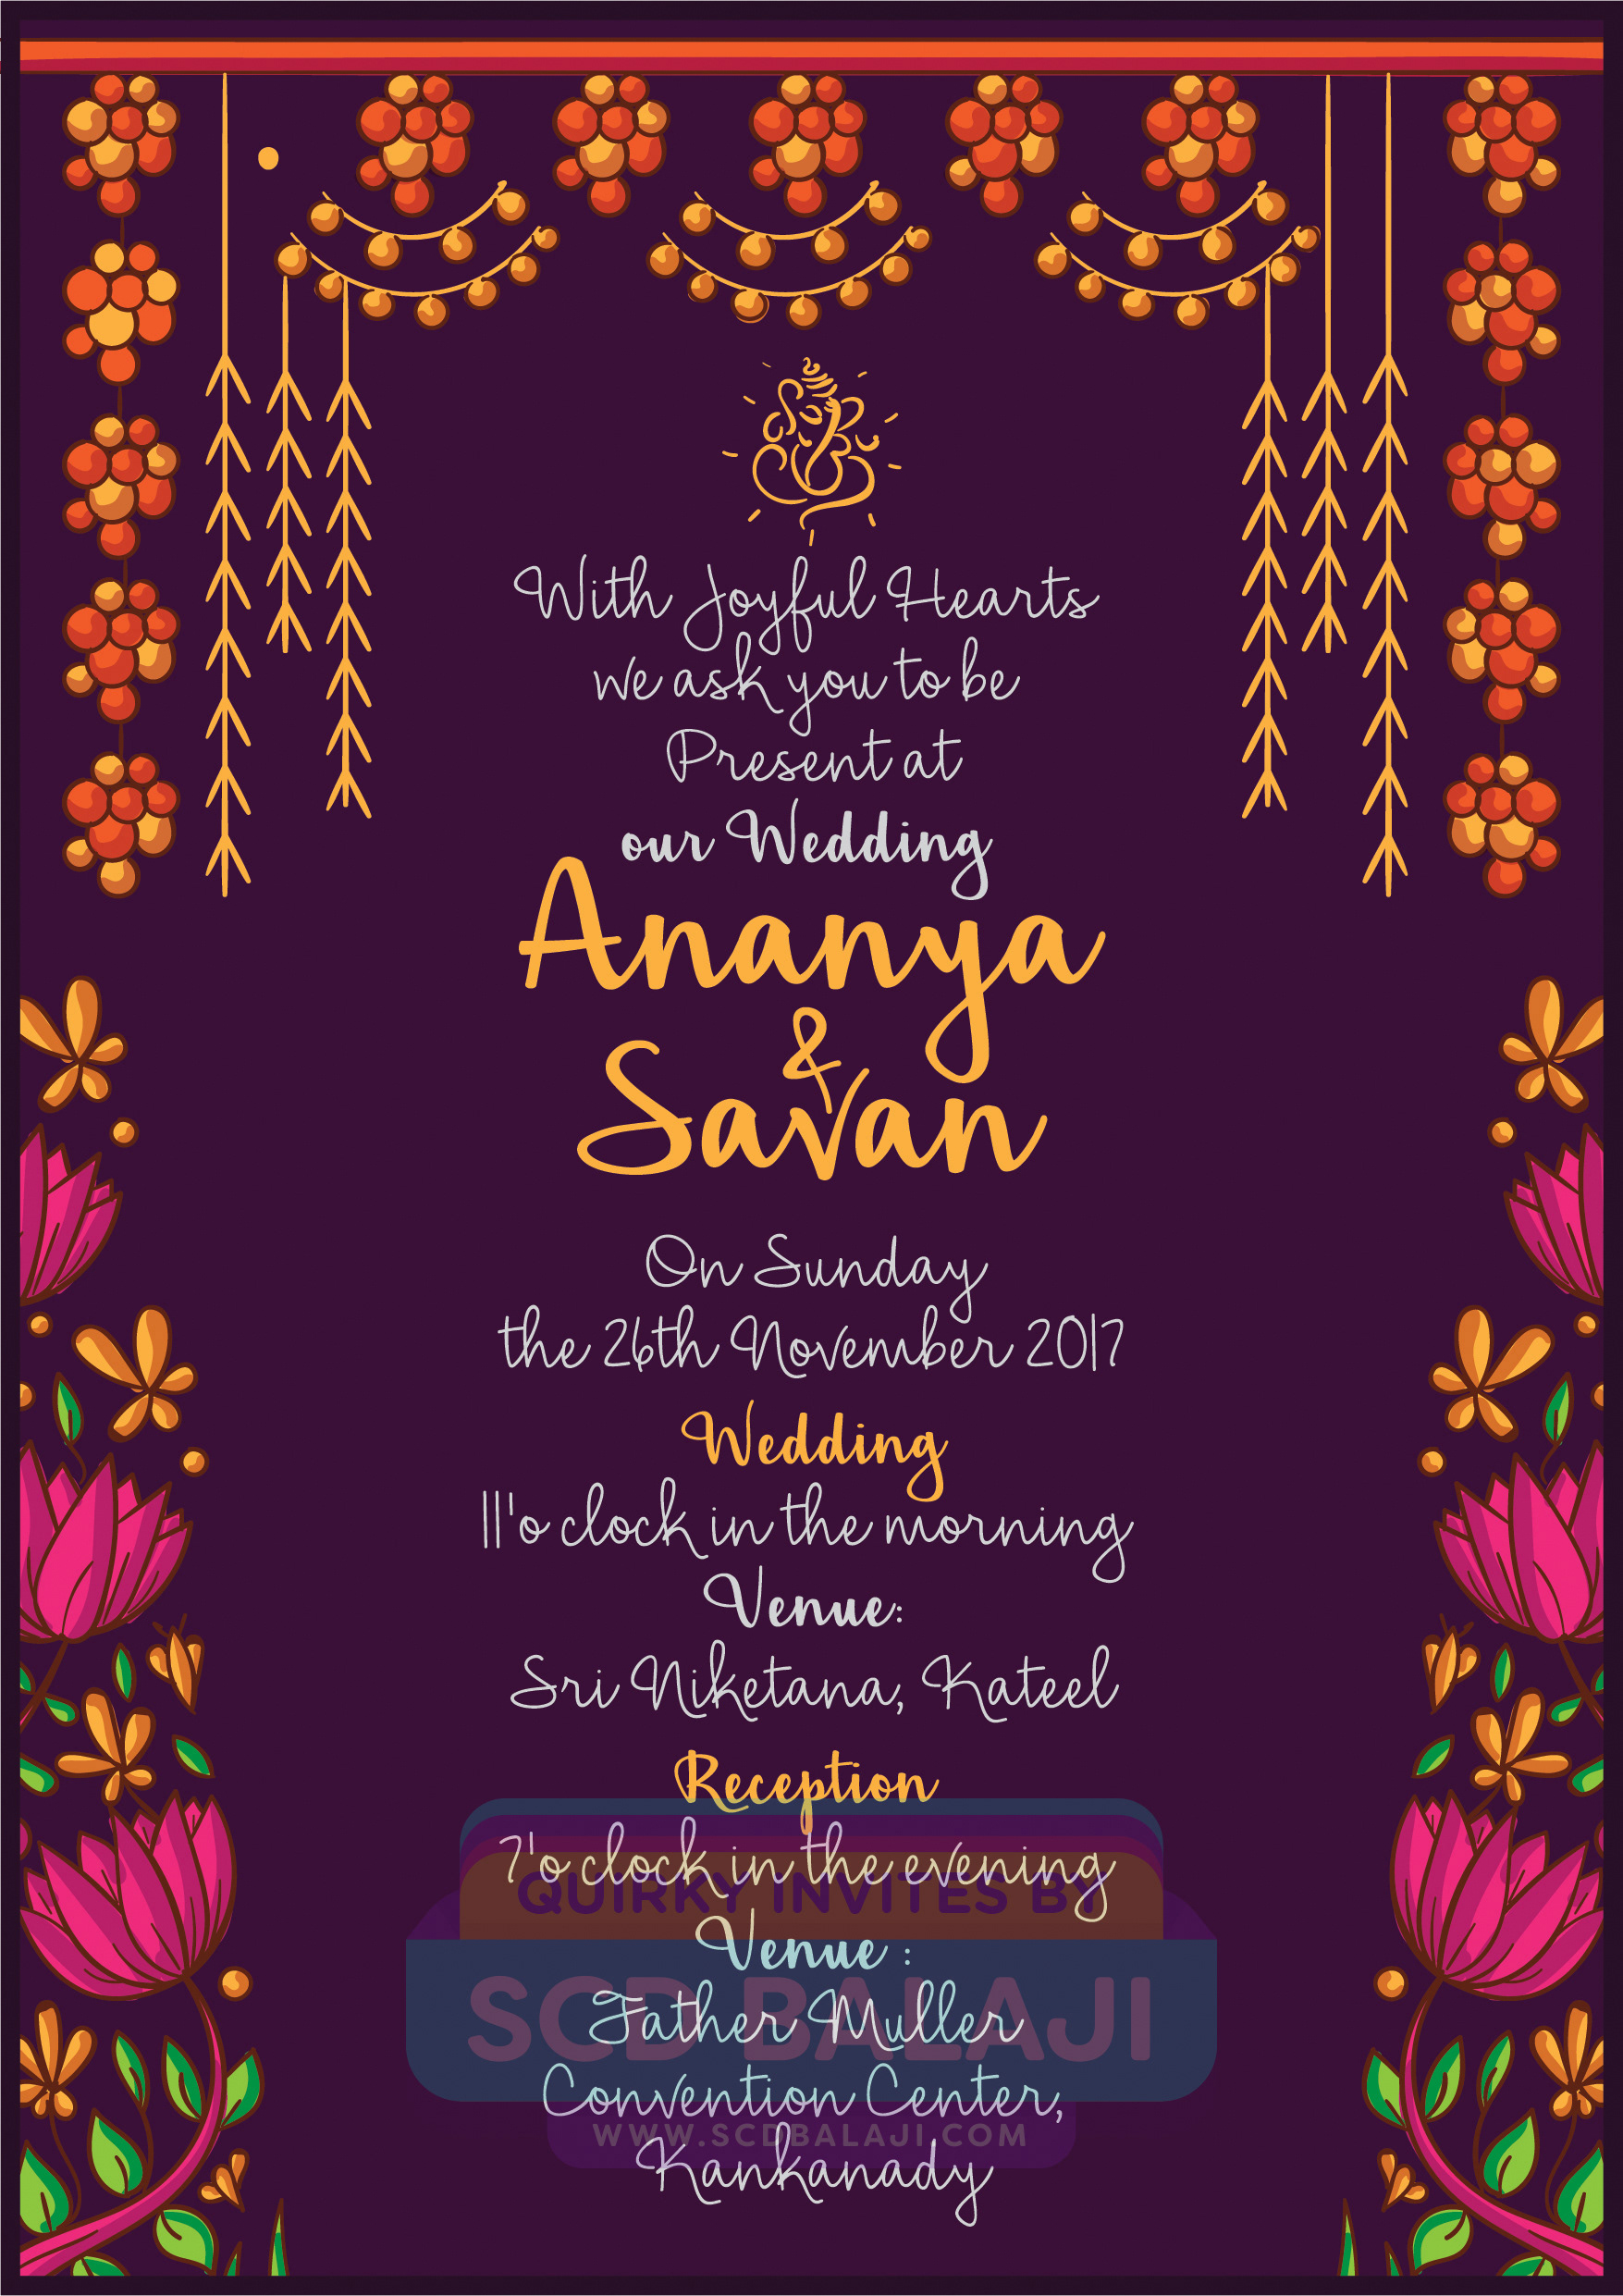 Scd balaji quirky creative indian wedding invitations card 300 gsm envelope cover 170 gsm rs 50 per card printing rs 20 per cover printing name venue date time day text replacement stopboris Images